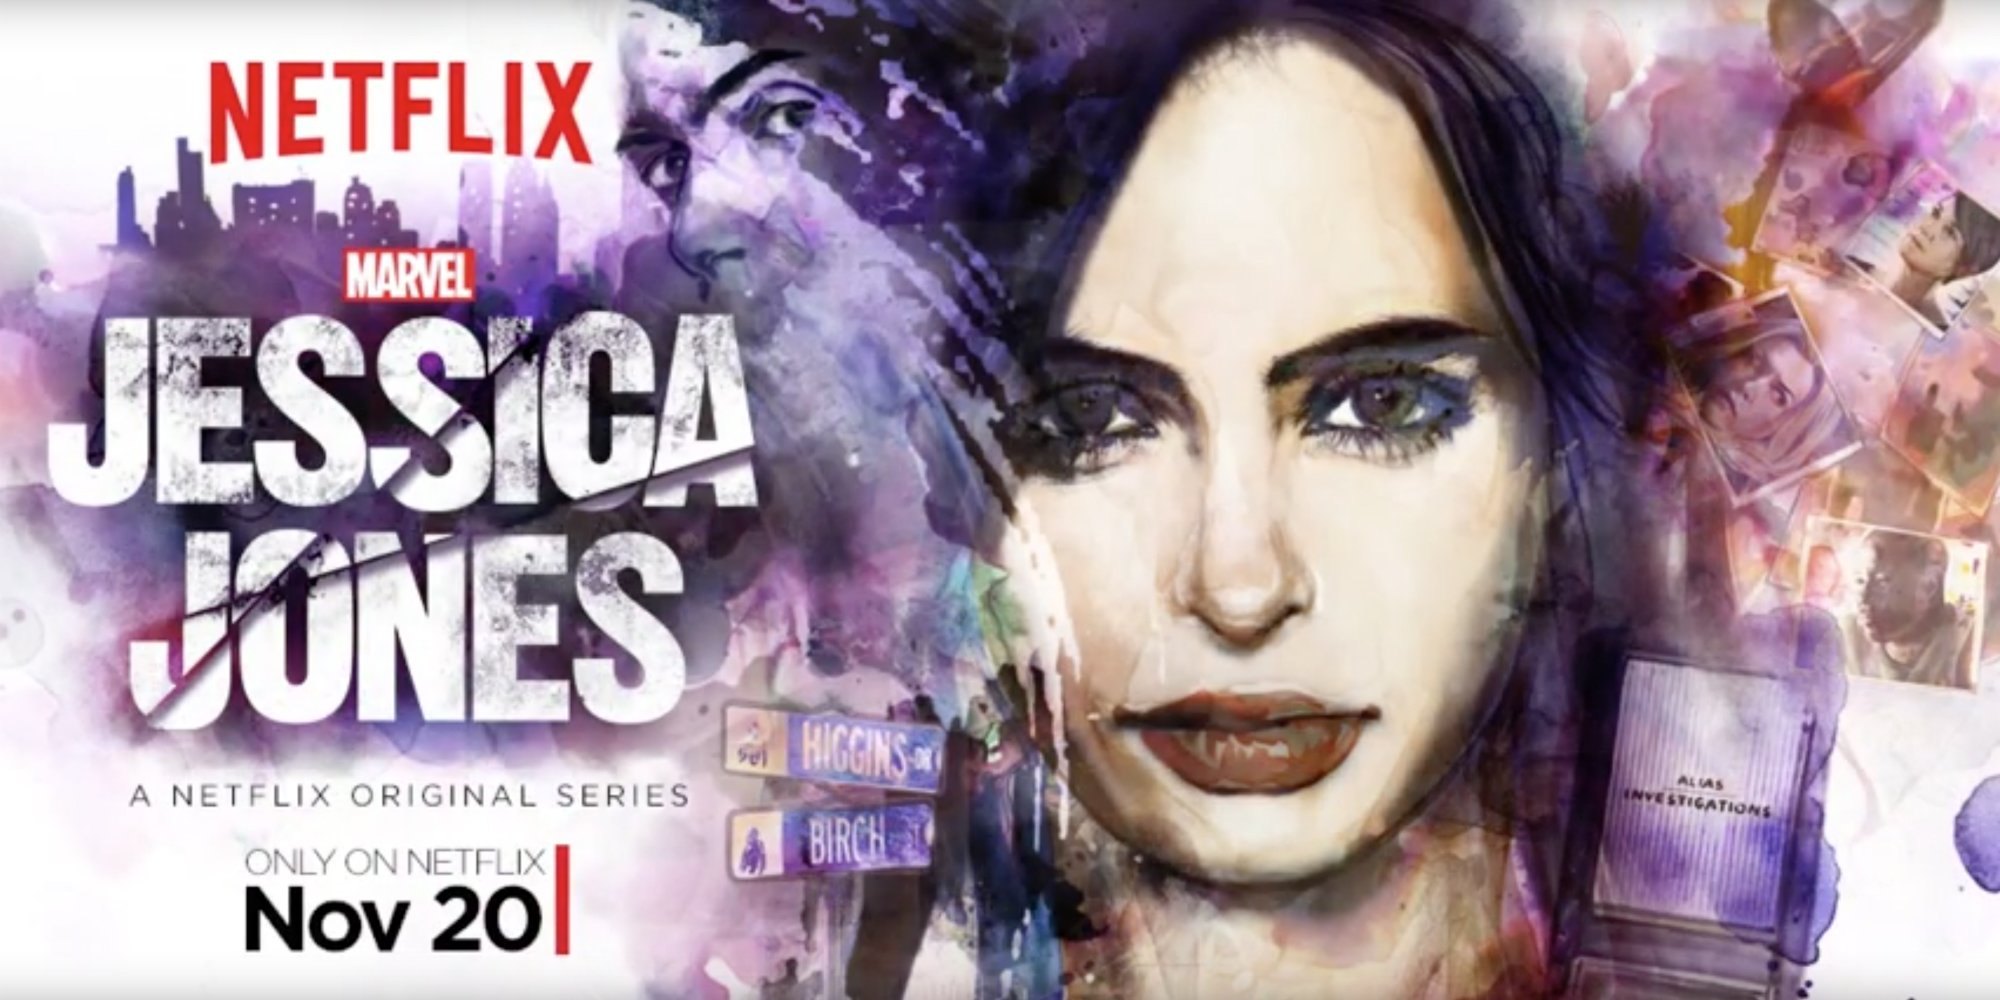 Marvel's Jessica Jones est disponible MAINTENANT sur Netflix!!